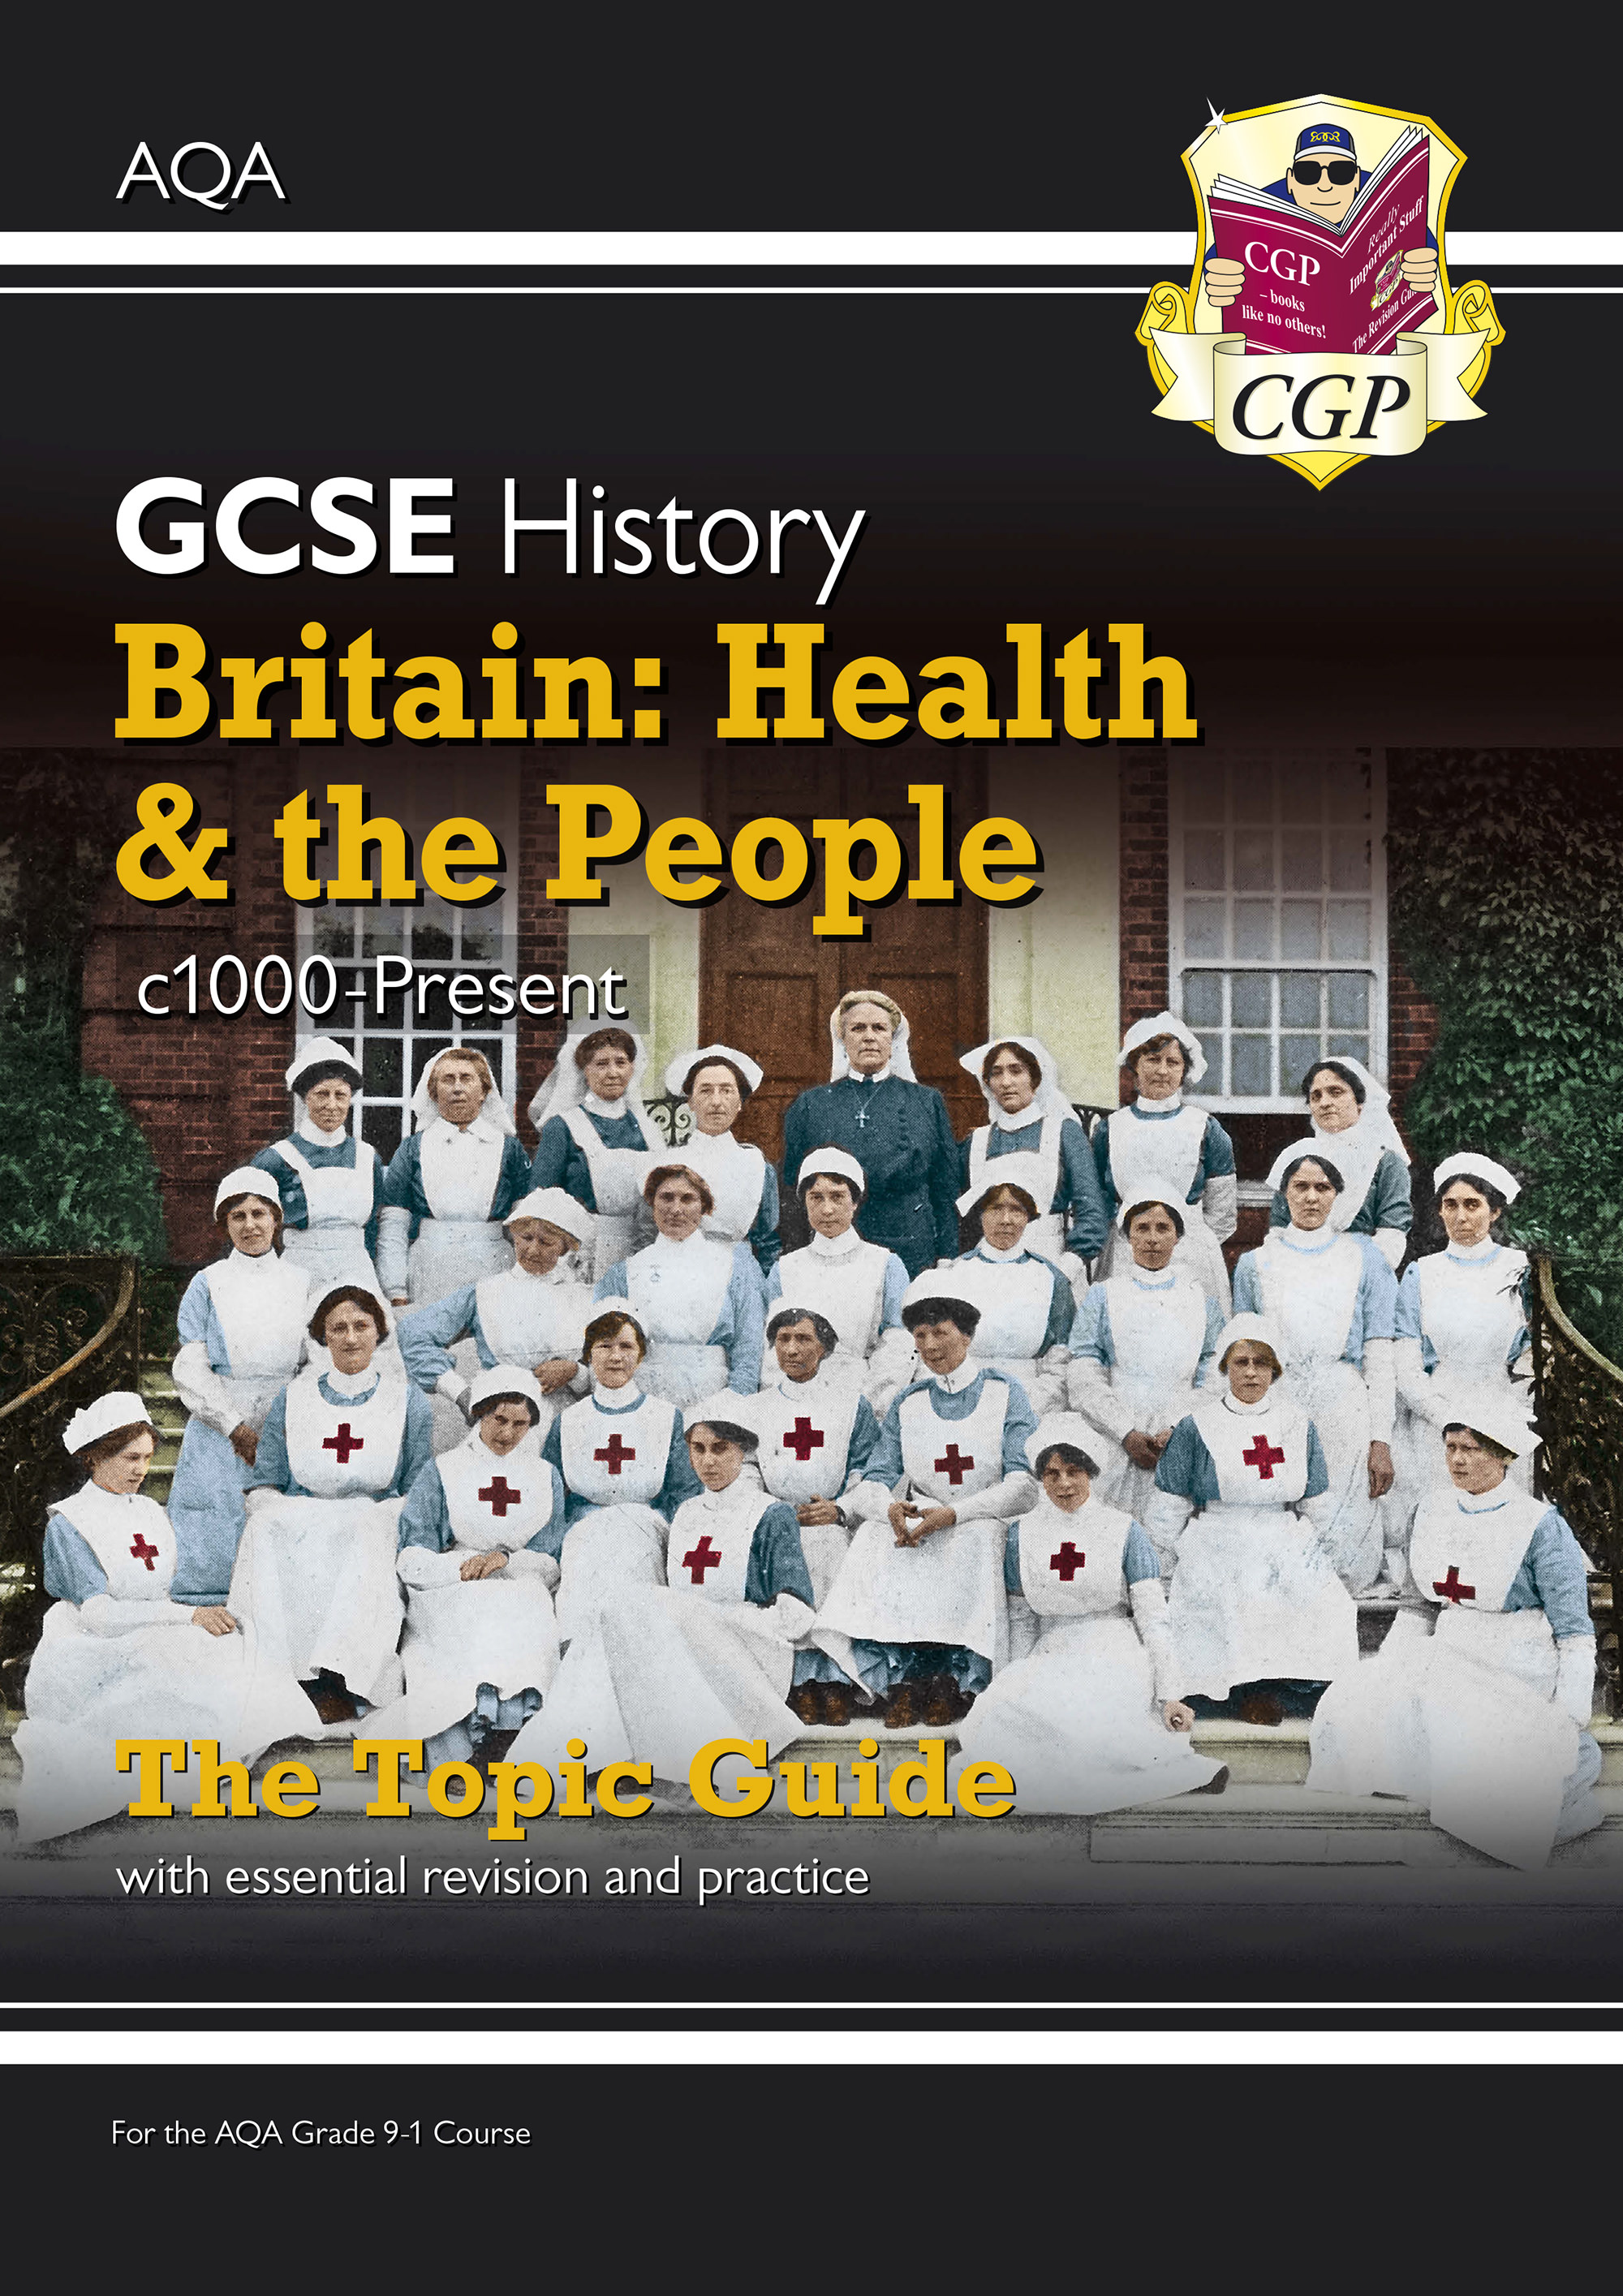 HAHPO41DK - New Grade 9-1 GCSE History AQA Topic Guide - Britain: Health and the People: c1000-Prese